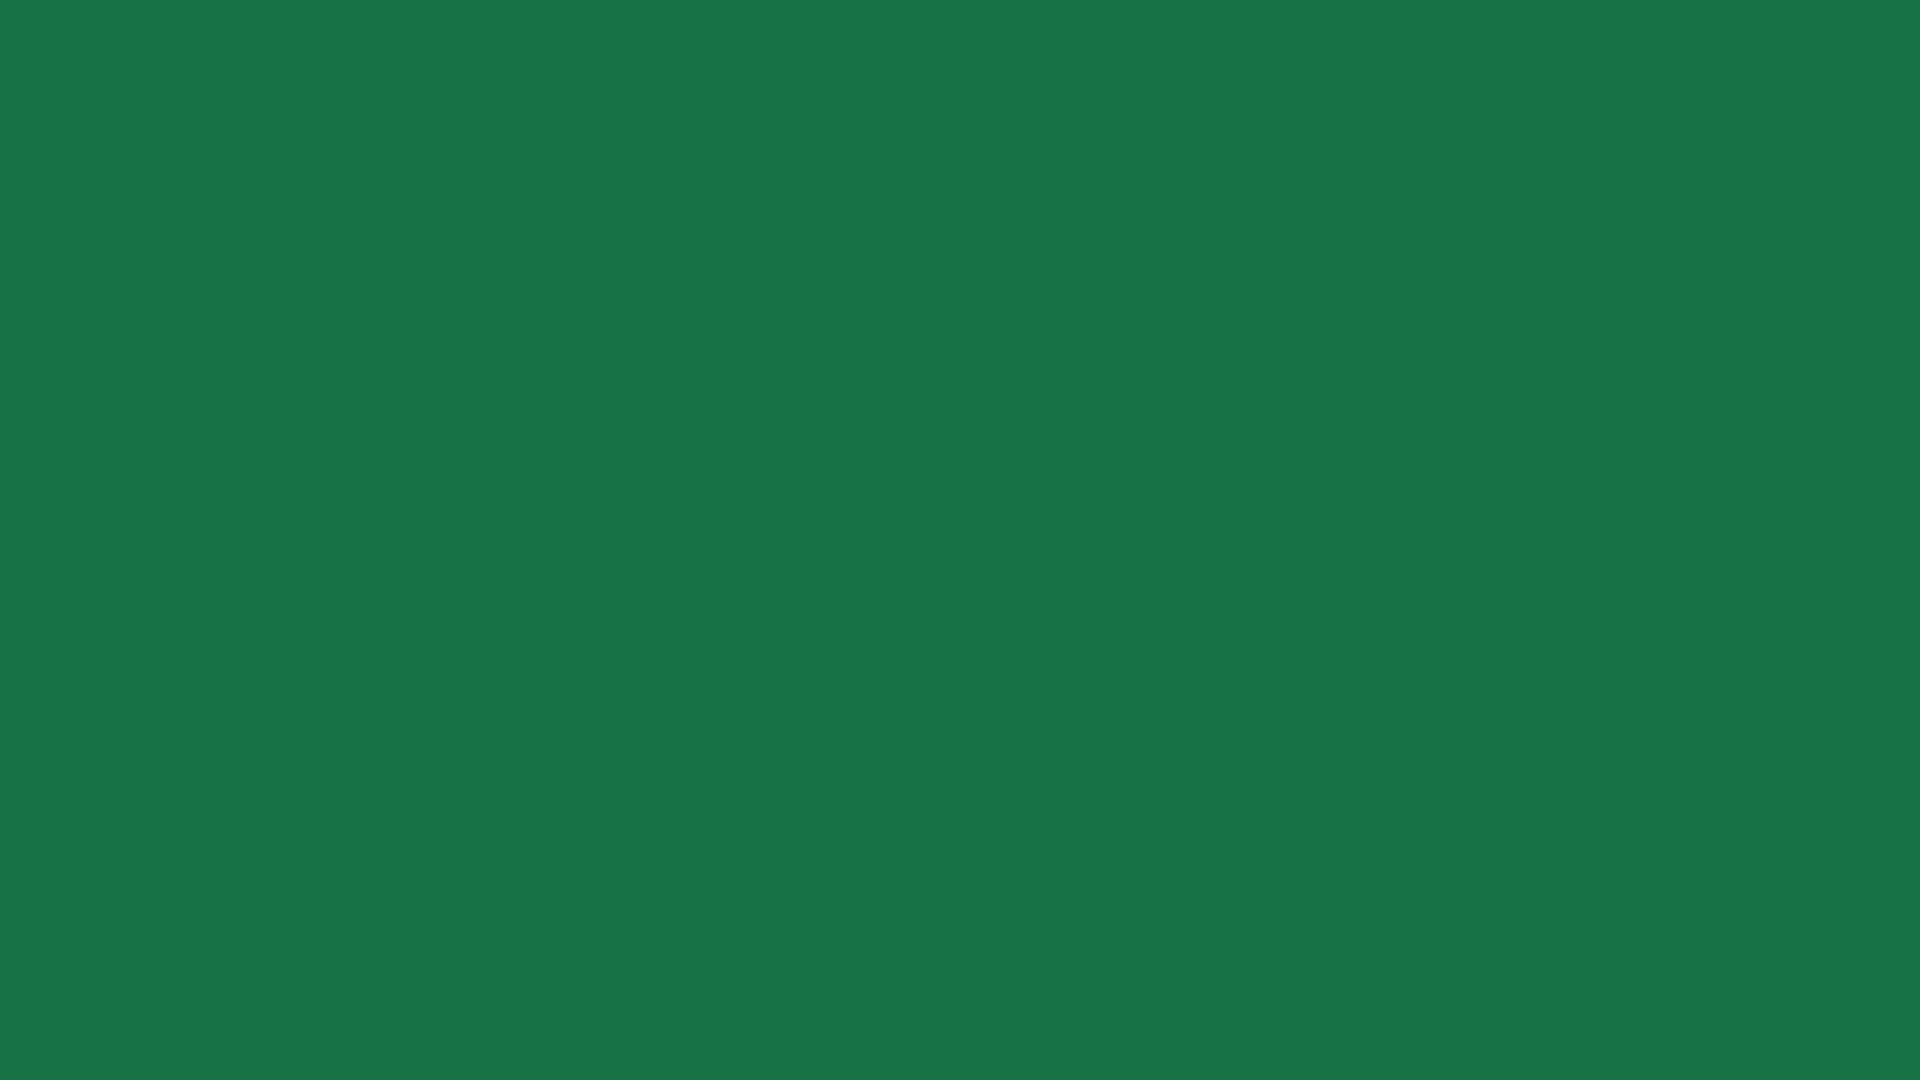 1920x1080 Dark Spring Green Solid Color Background